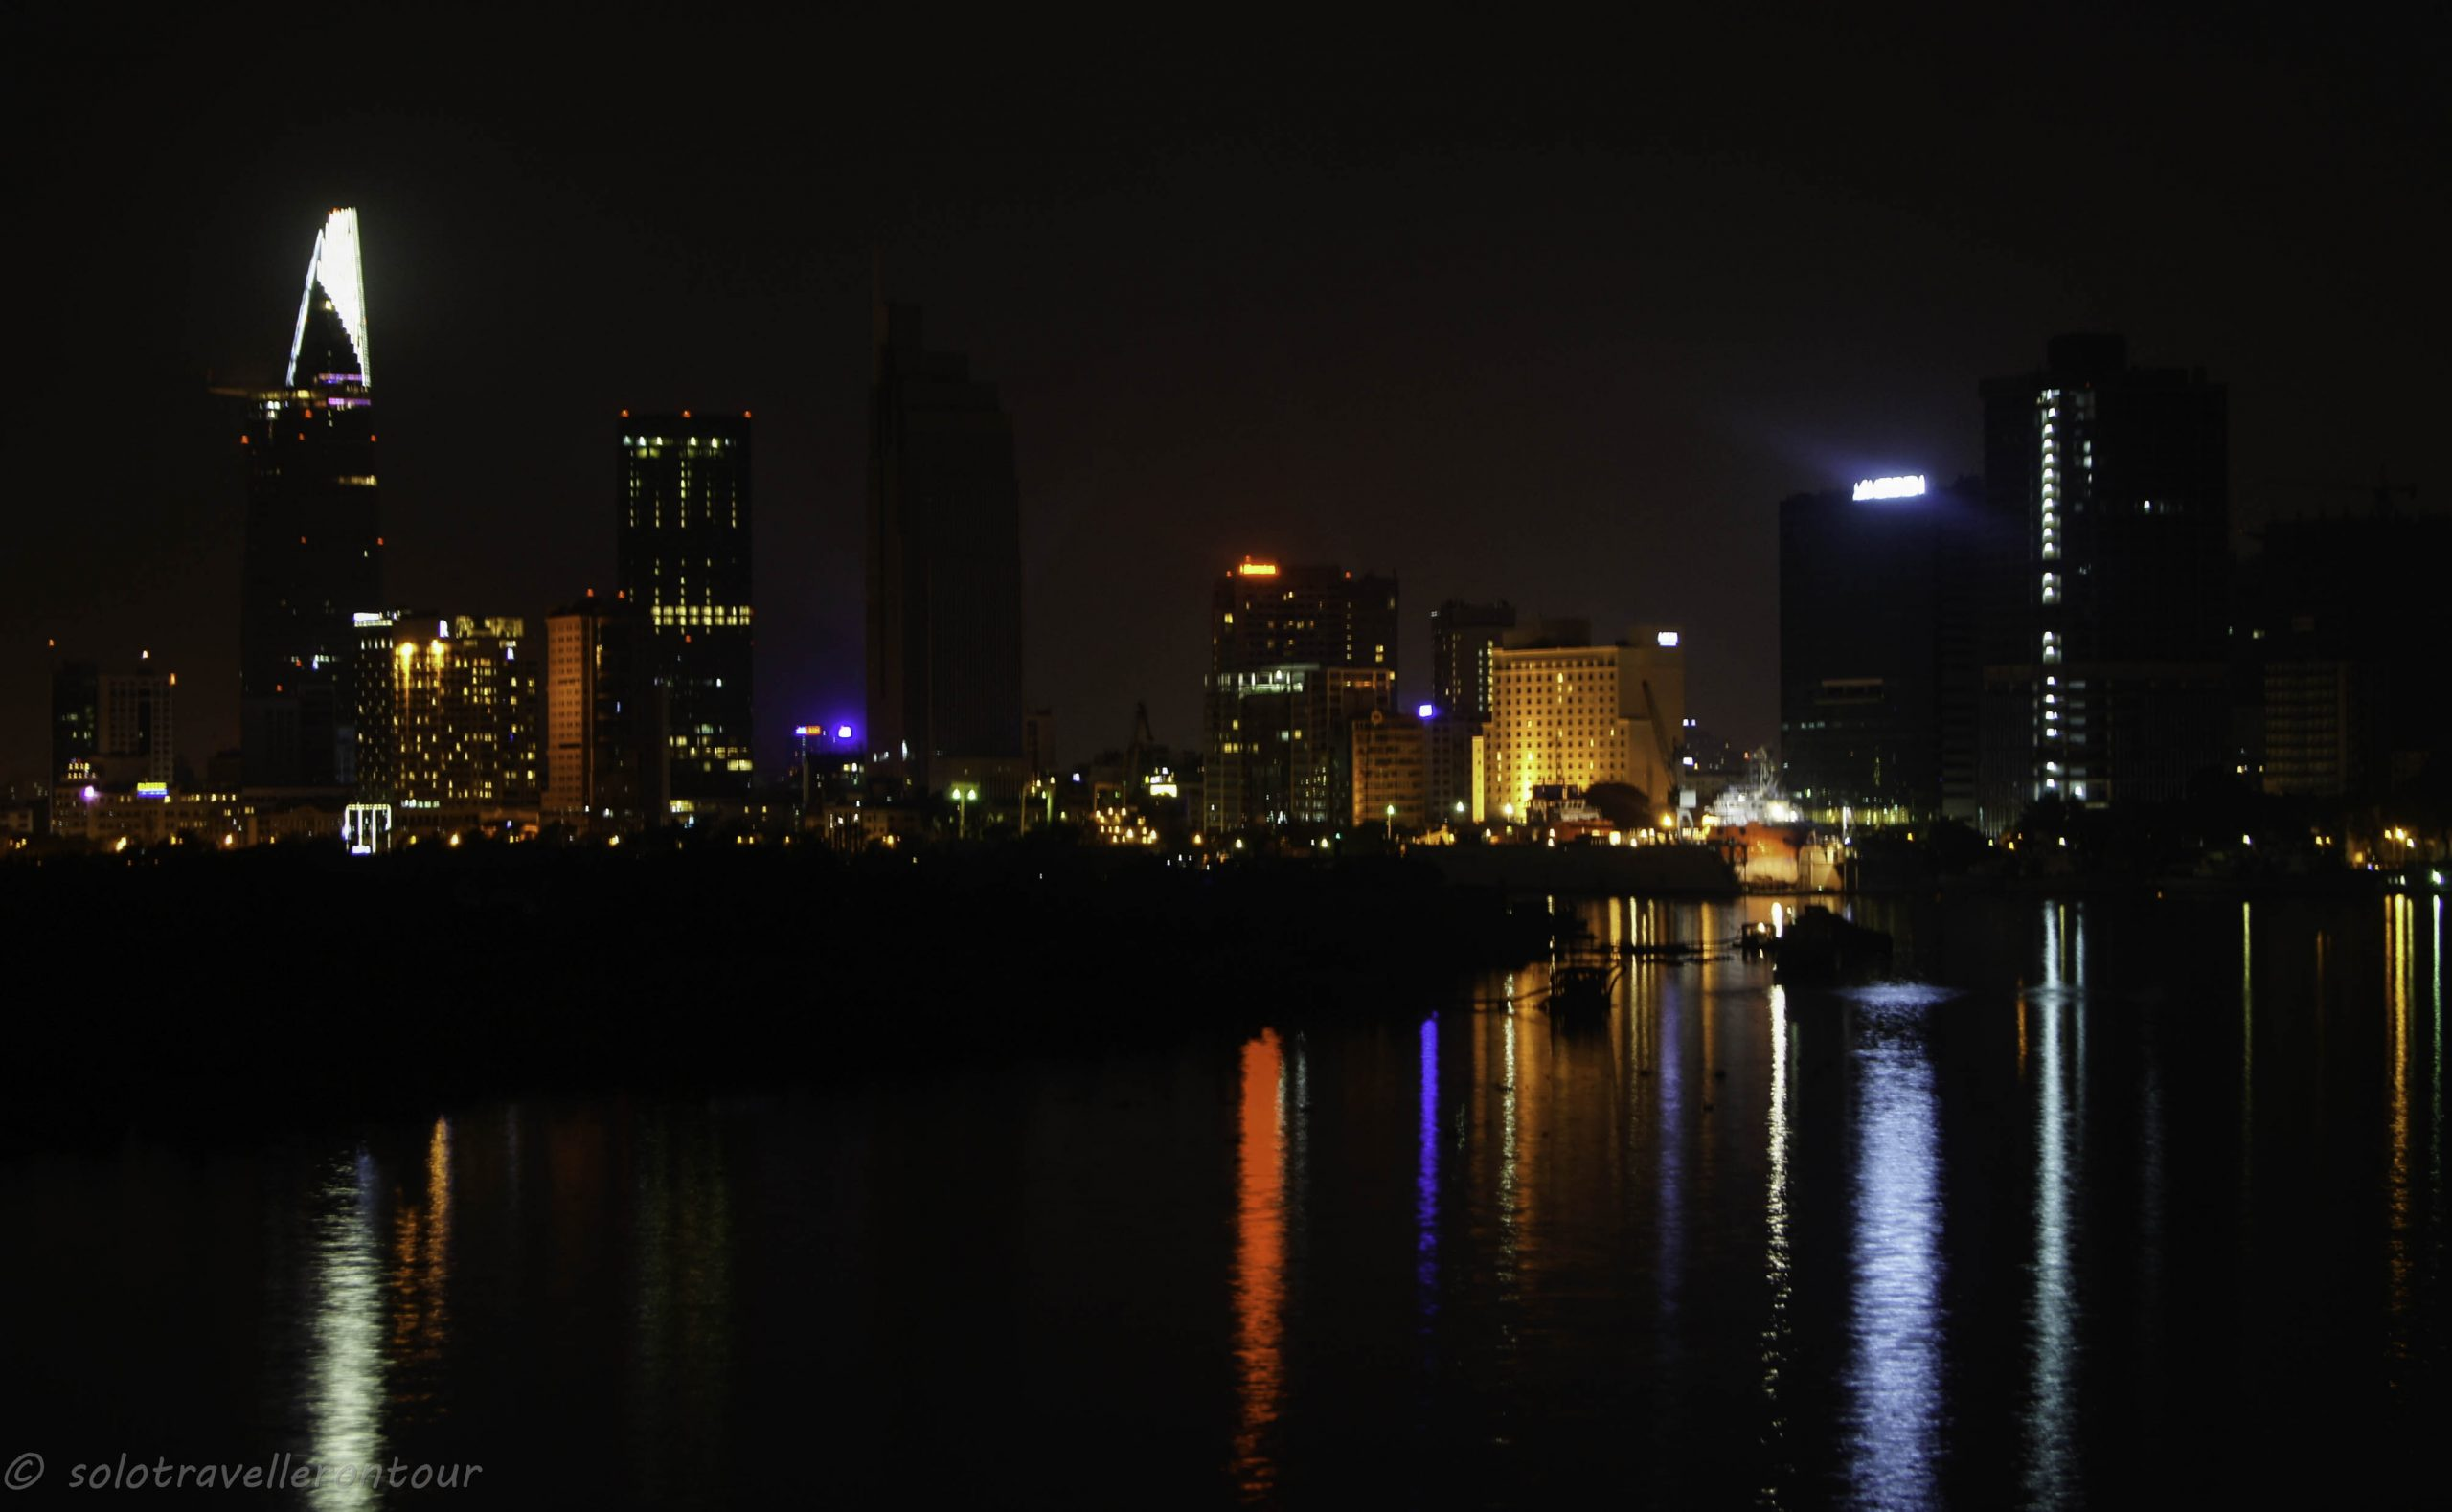 20. HCMC – Sitting at the tail of a dragon